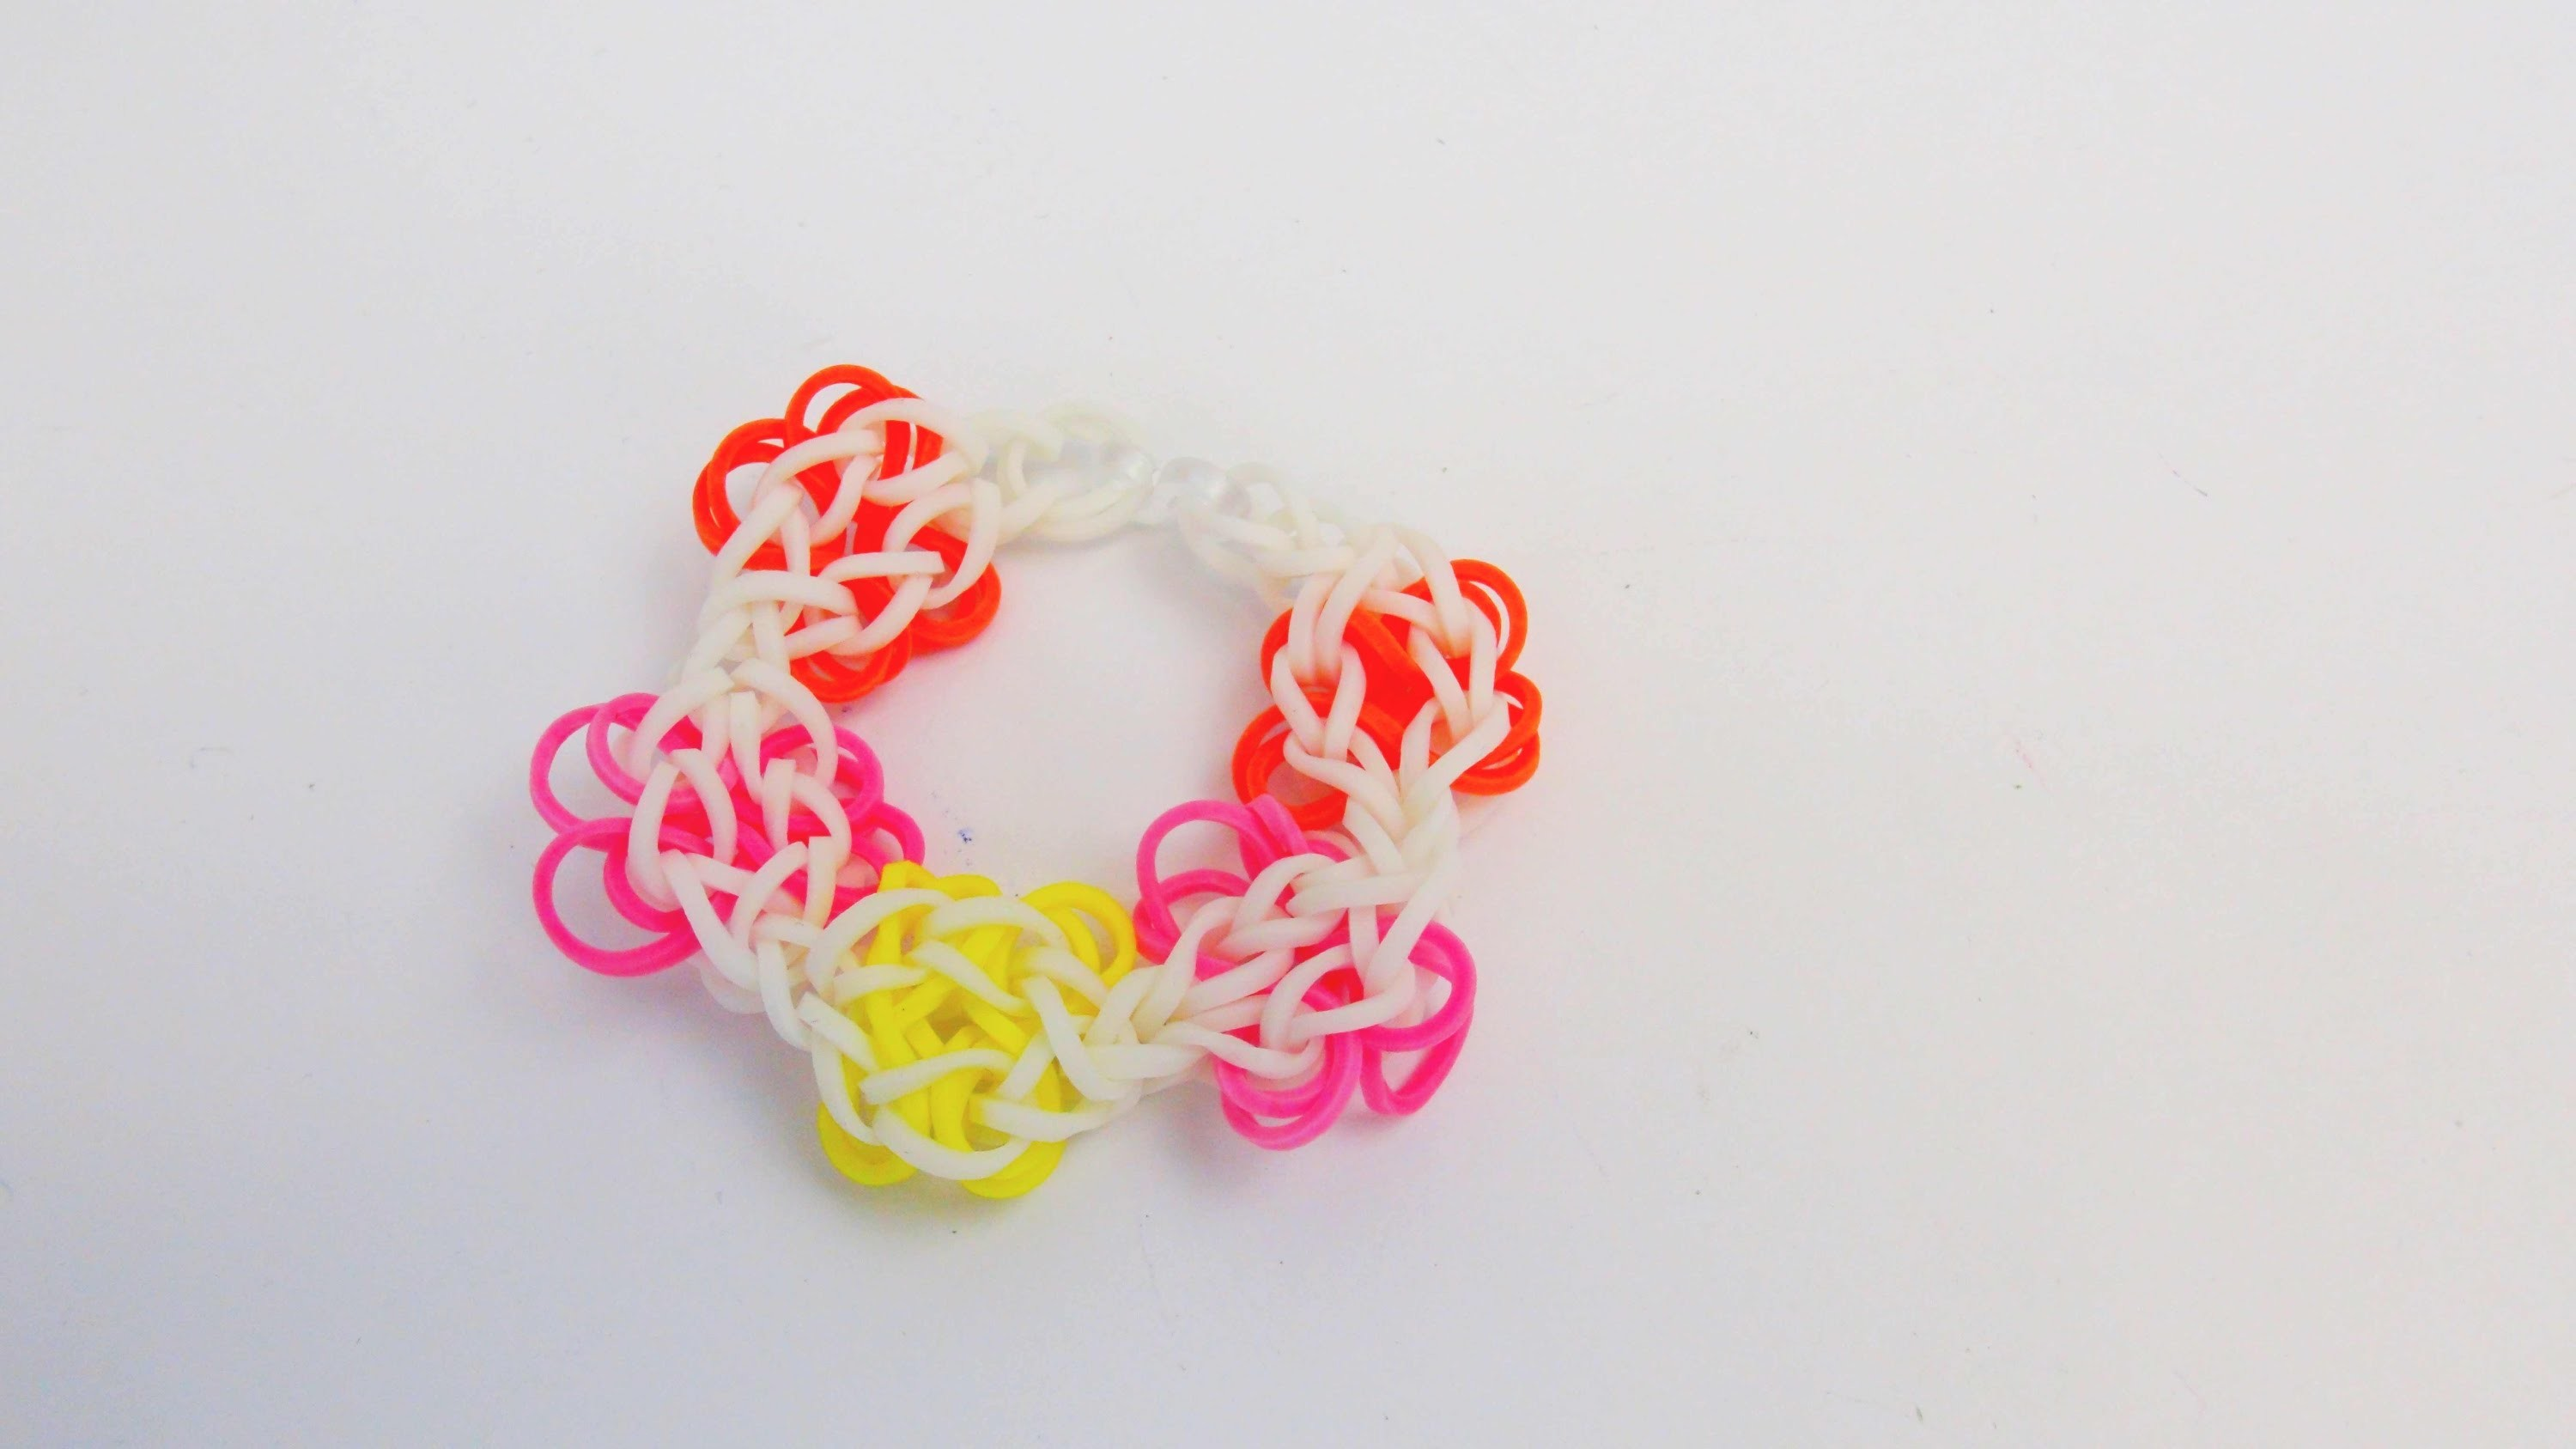 Rainbow Loom Frühlingsarmband. Blumenarmband mit dem MonsterTail Easy Loom Band Tutorial | deutsch